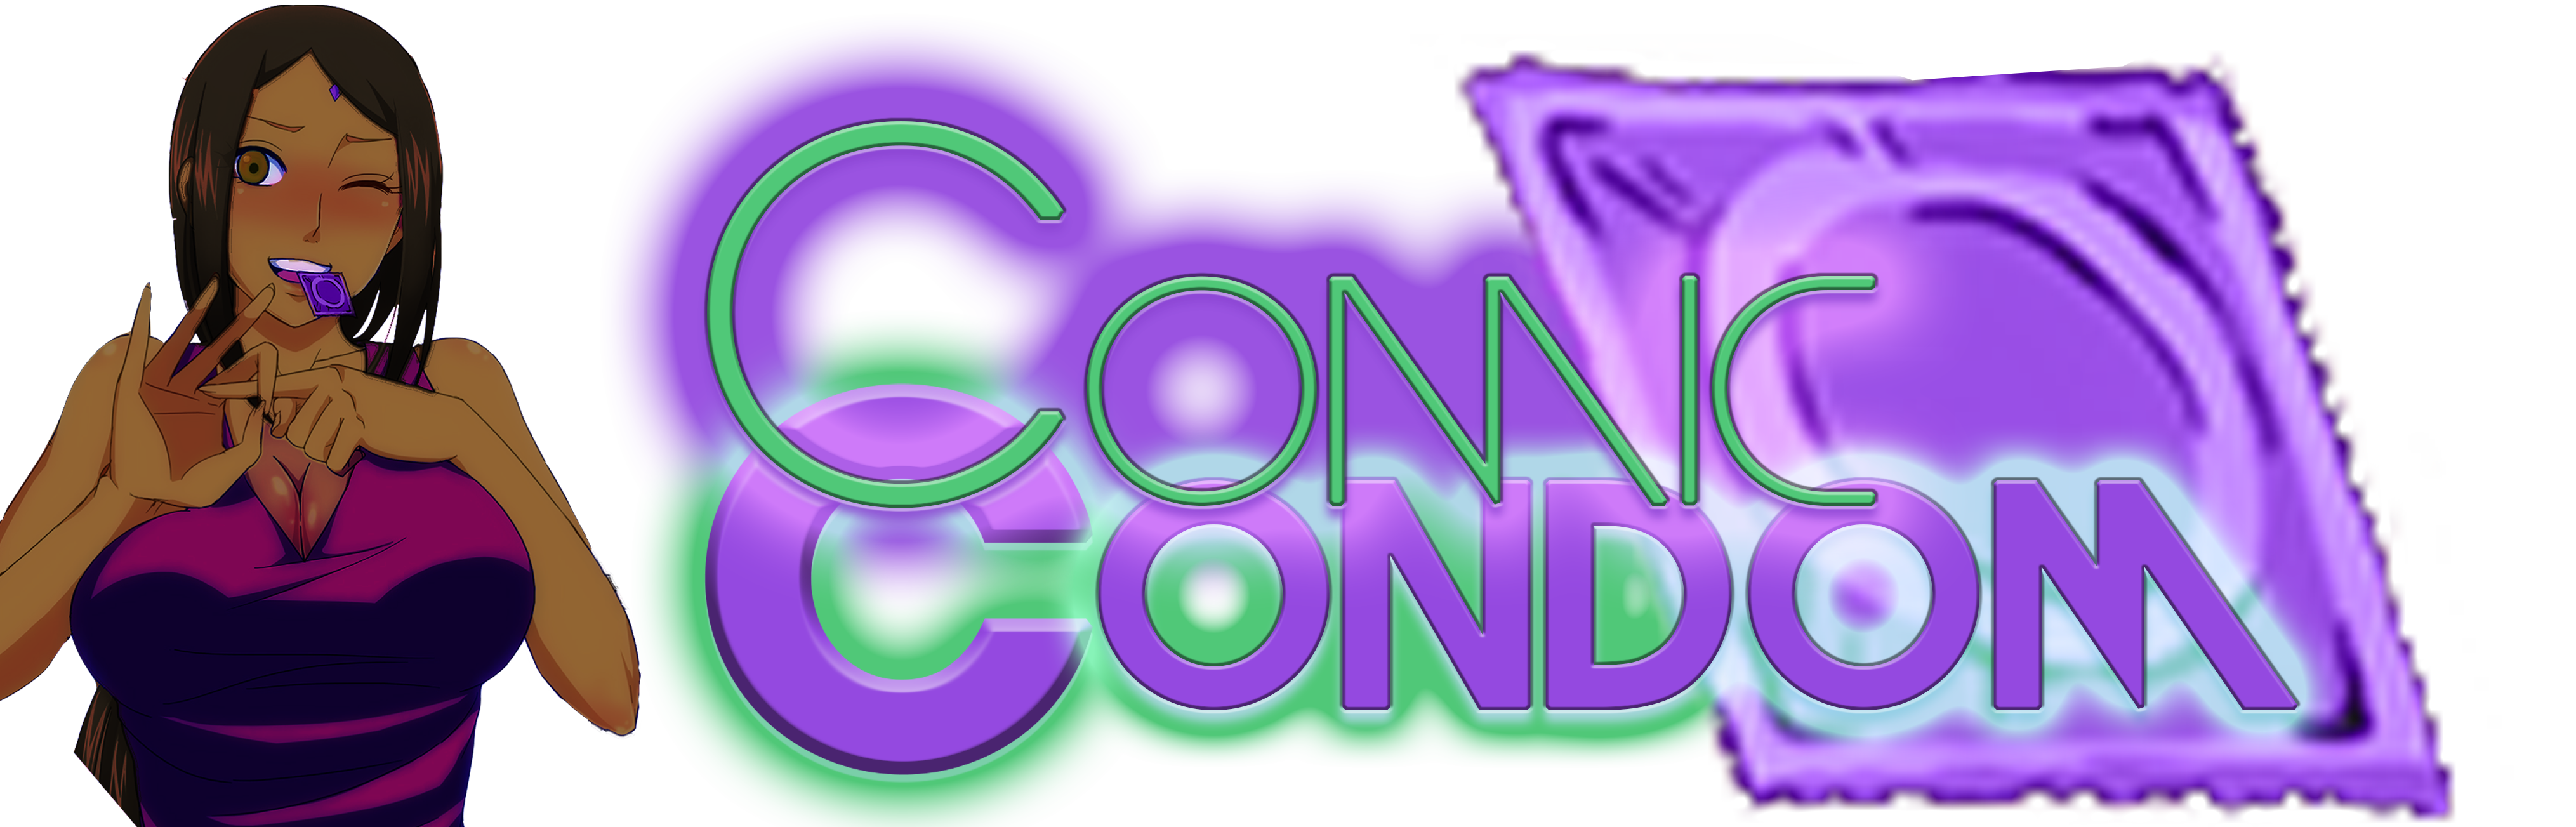 Comic-Condom-Candace-Banner-1388x1143-LIGHT